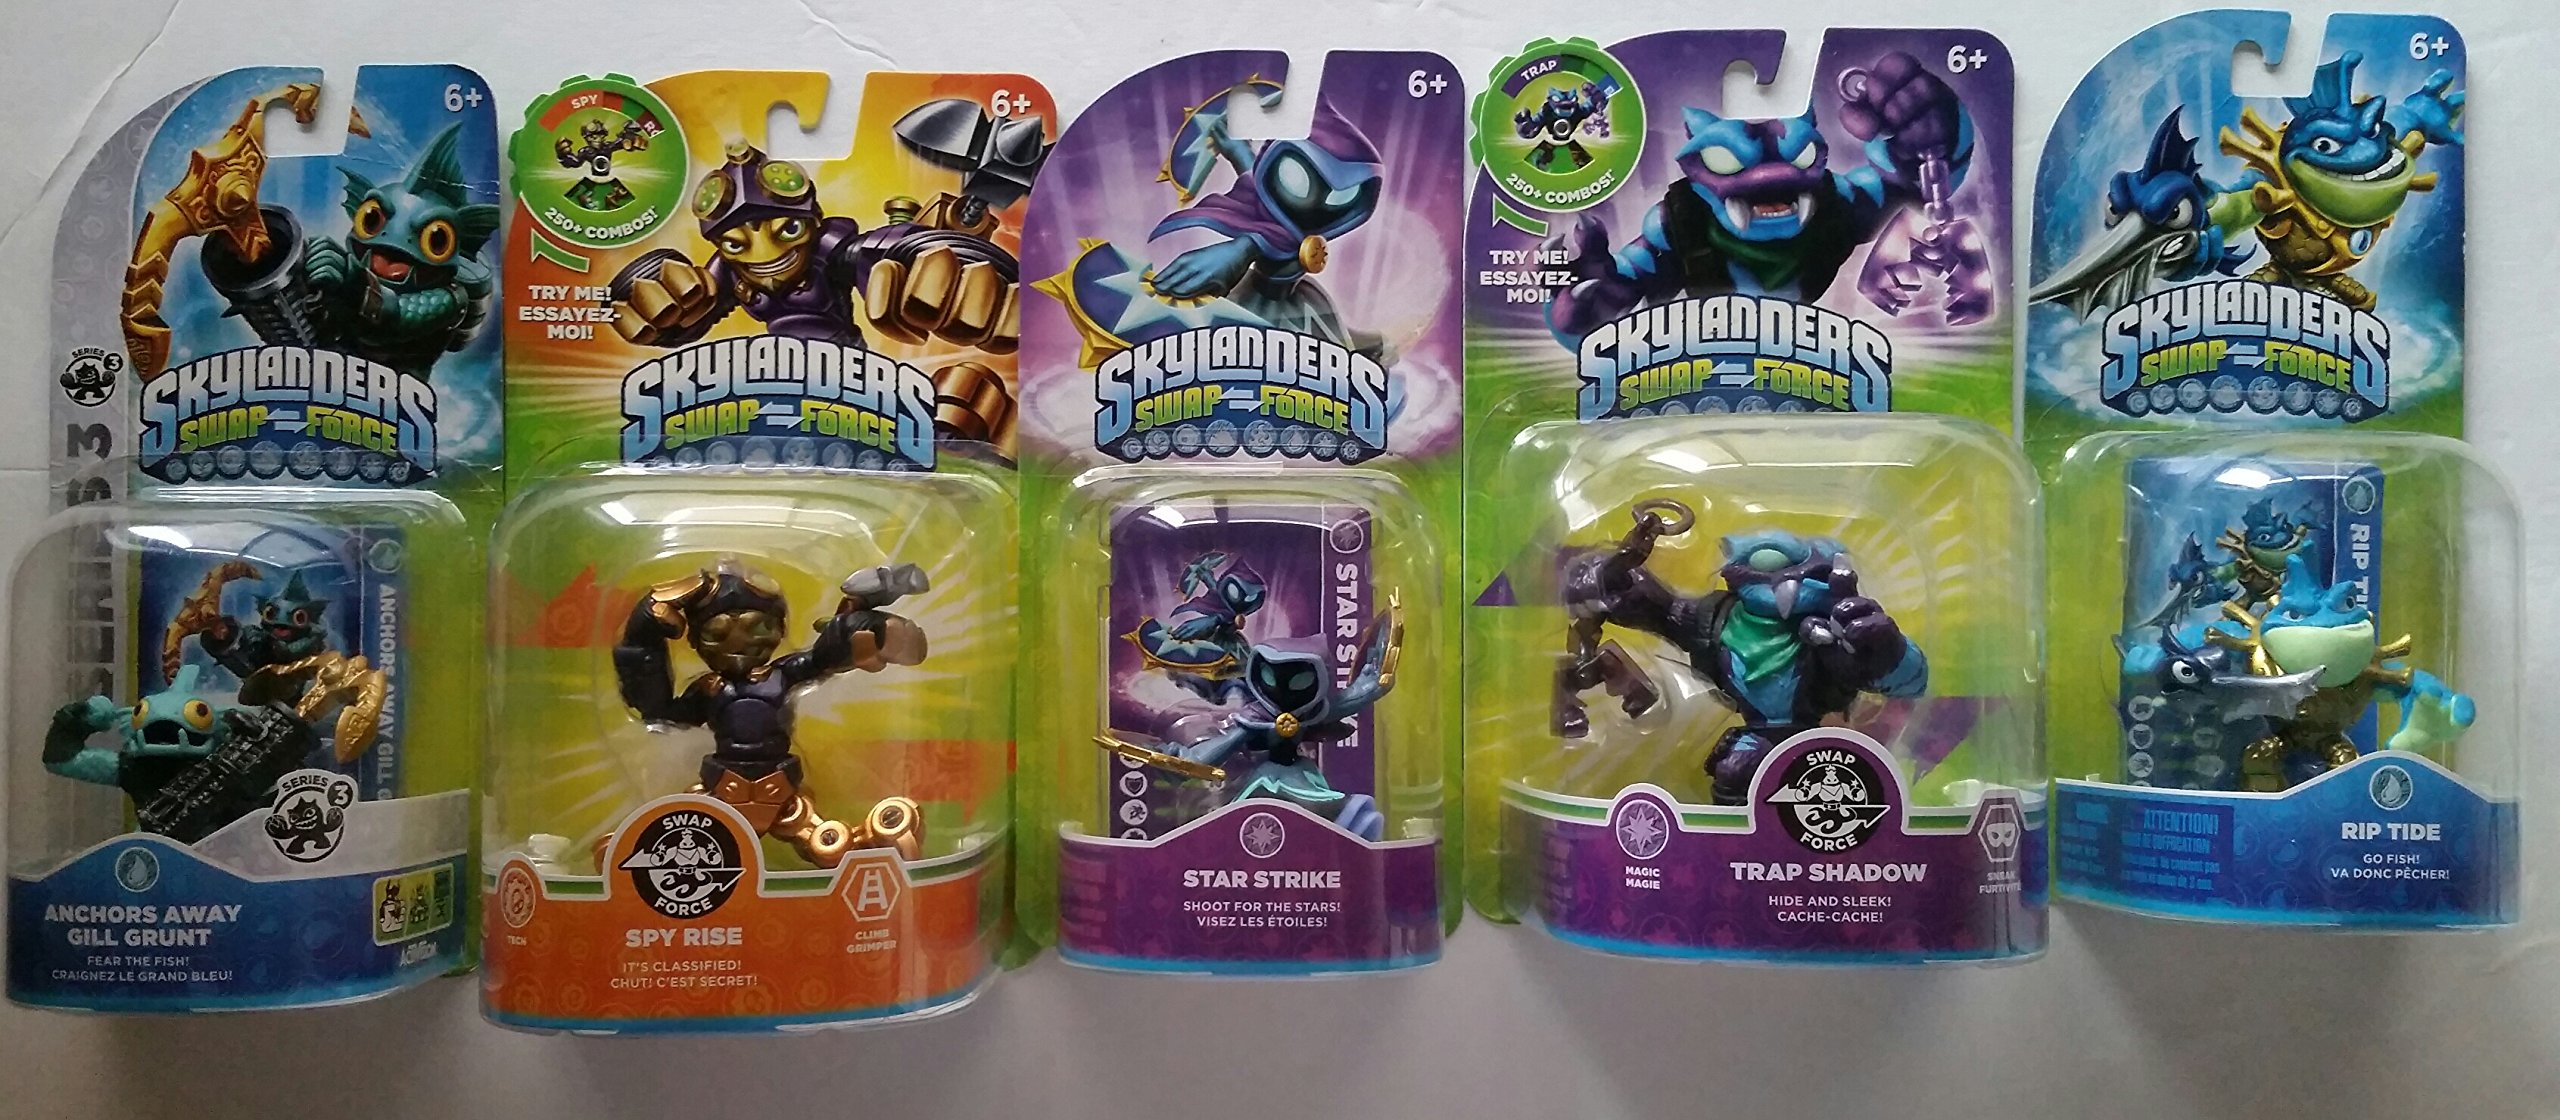 Skylanders Swap Force Action Figures (5) : Spy Rise,Trap Shadow , Rip Tide , Star Strike , and Anchors Gill Grunt